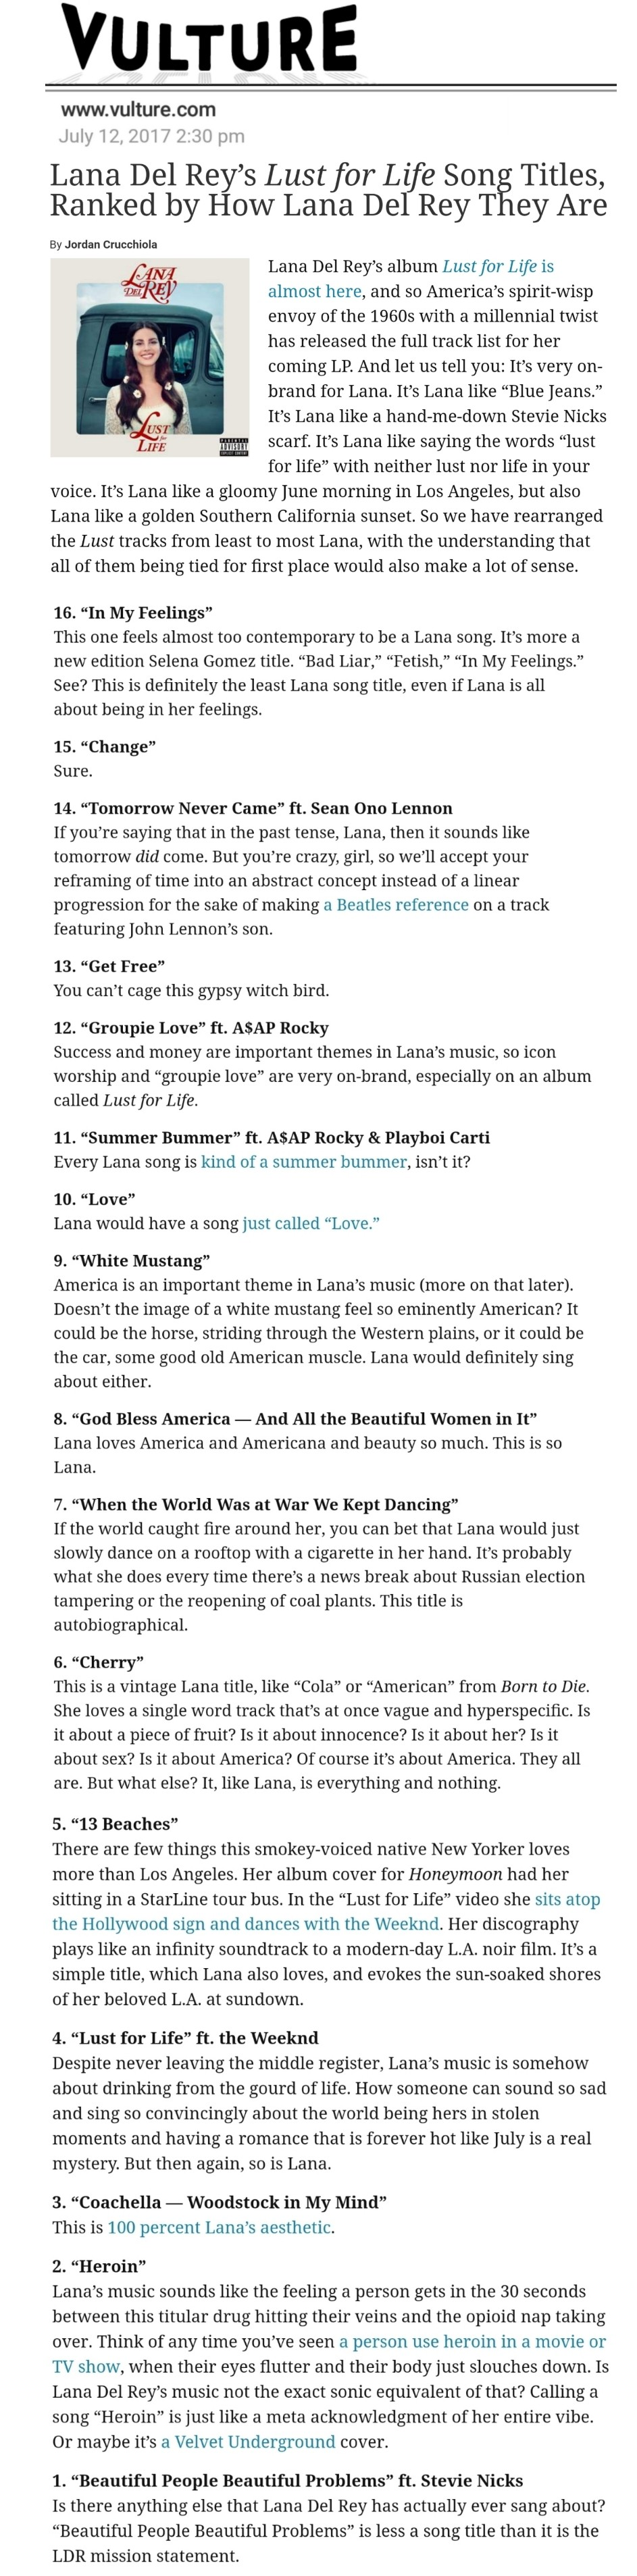 Vulture com: Lana Del Rey's Lust For Life song titles ranked